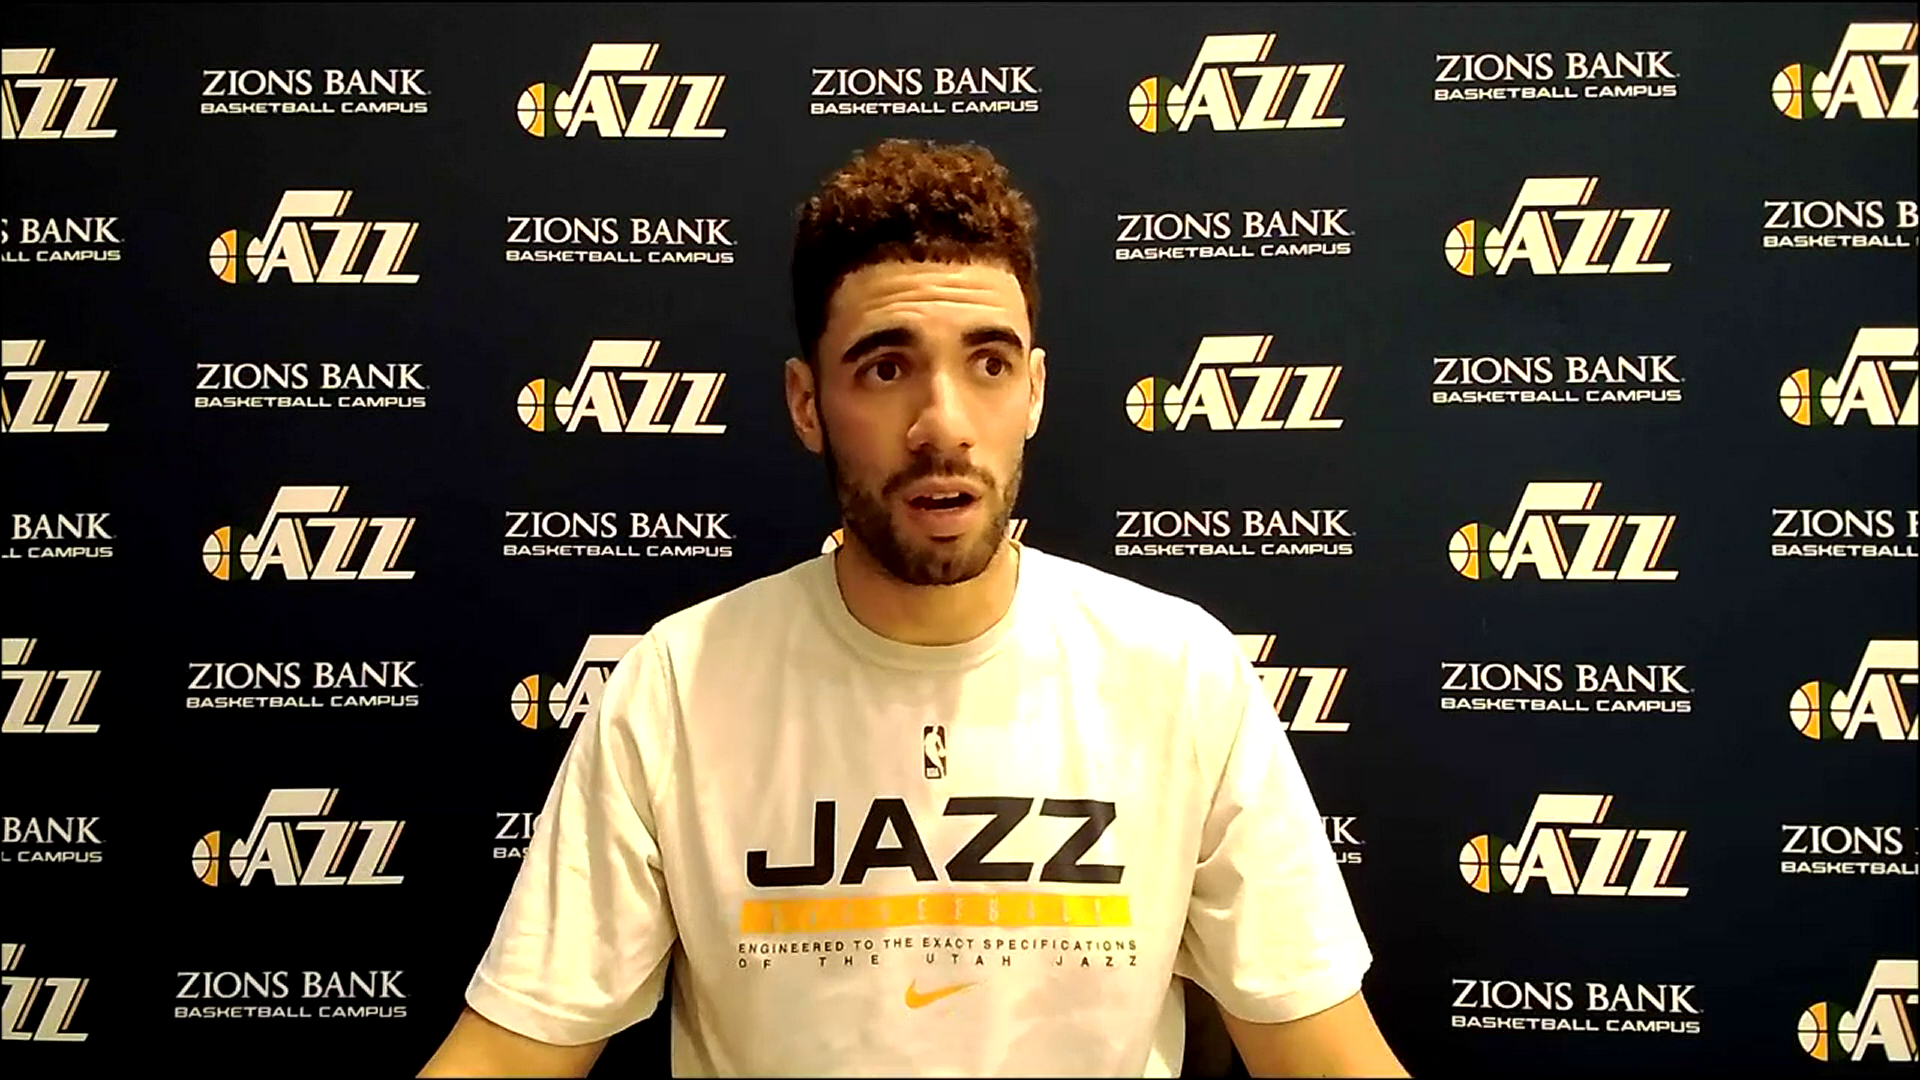 Shootaround 1.12—Georges talks about what makes the Jazz's bench successful